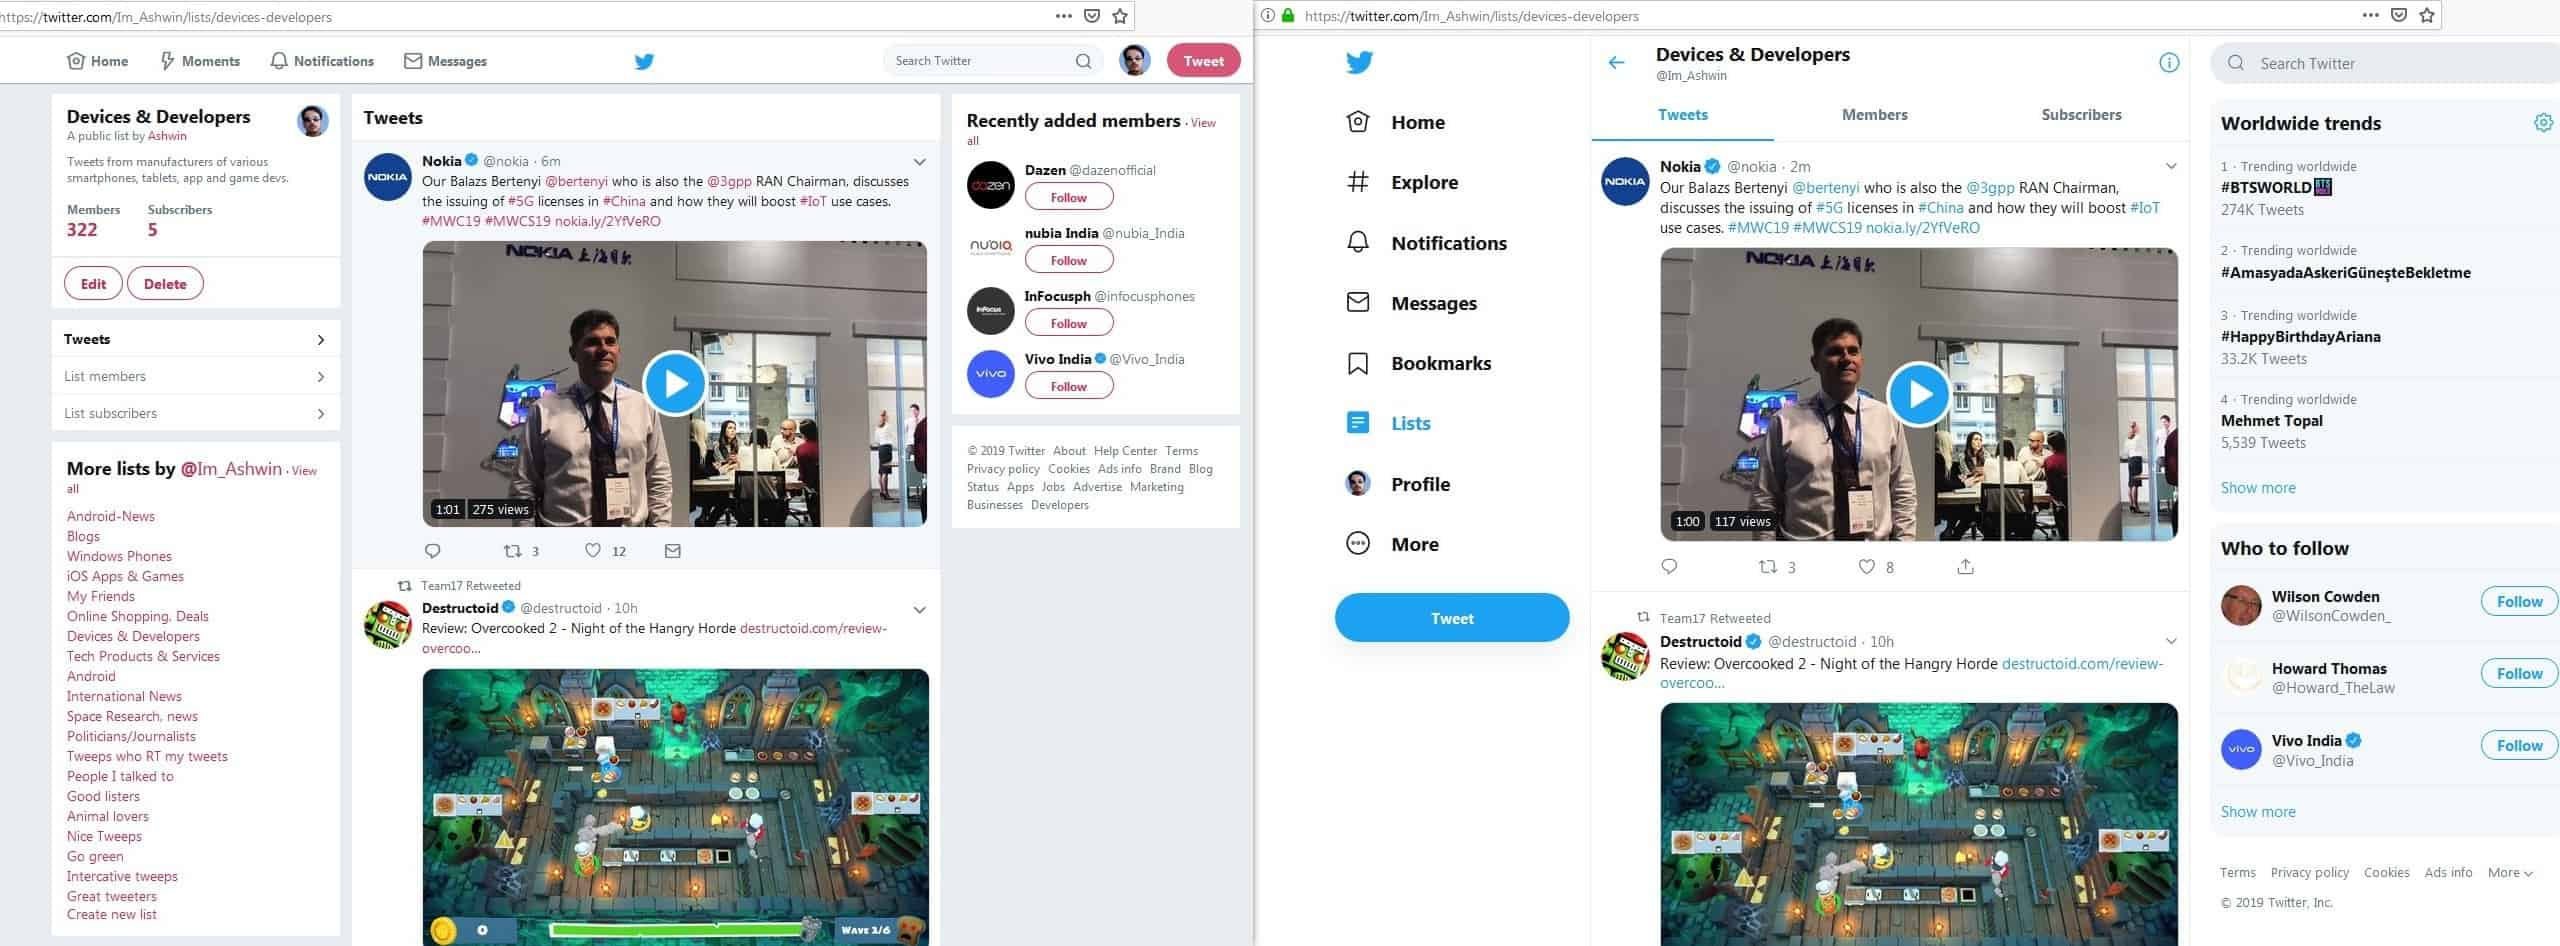 Twitter old design vs new